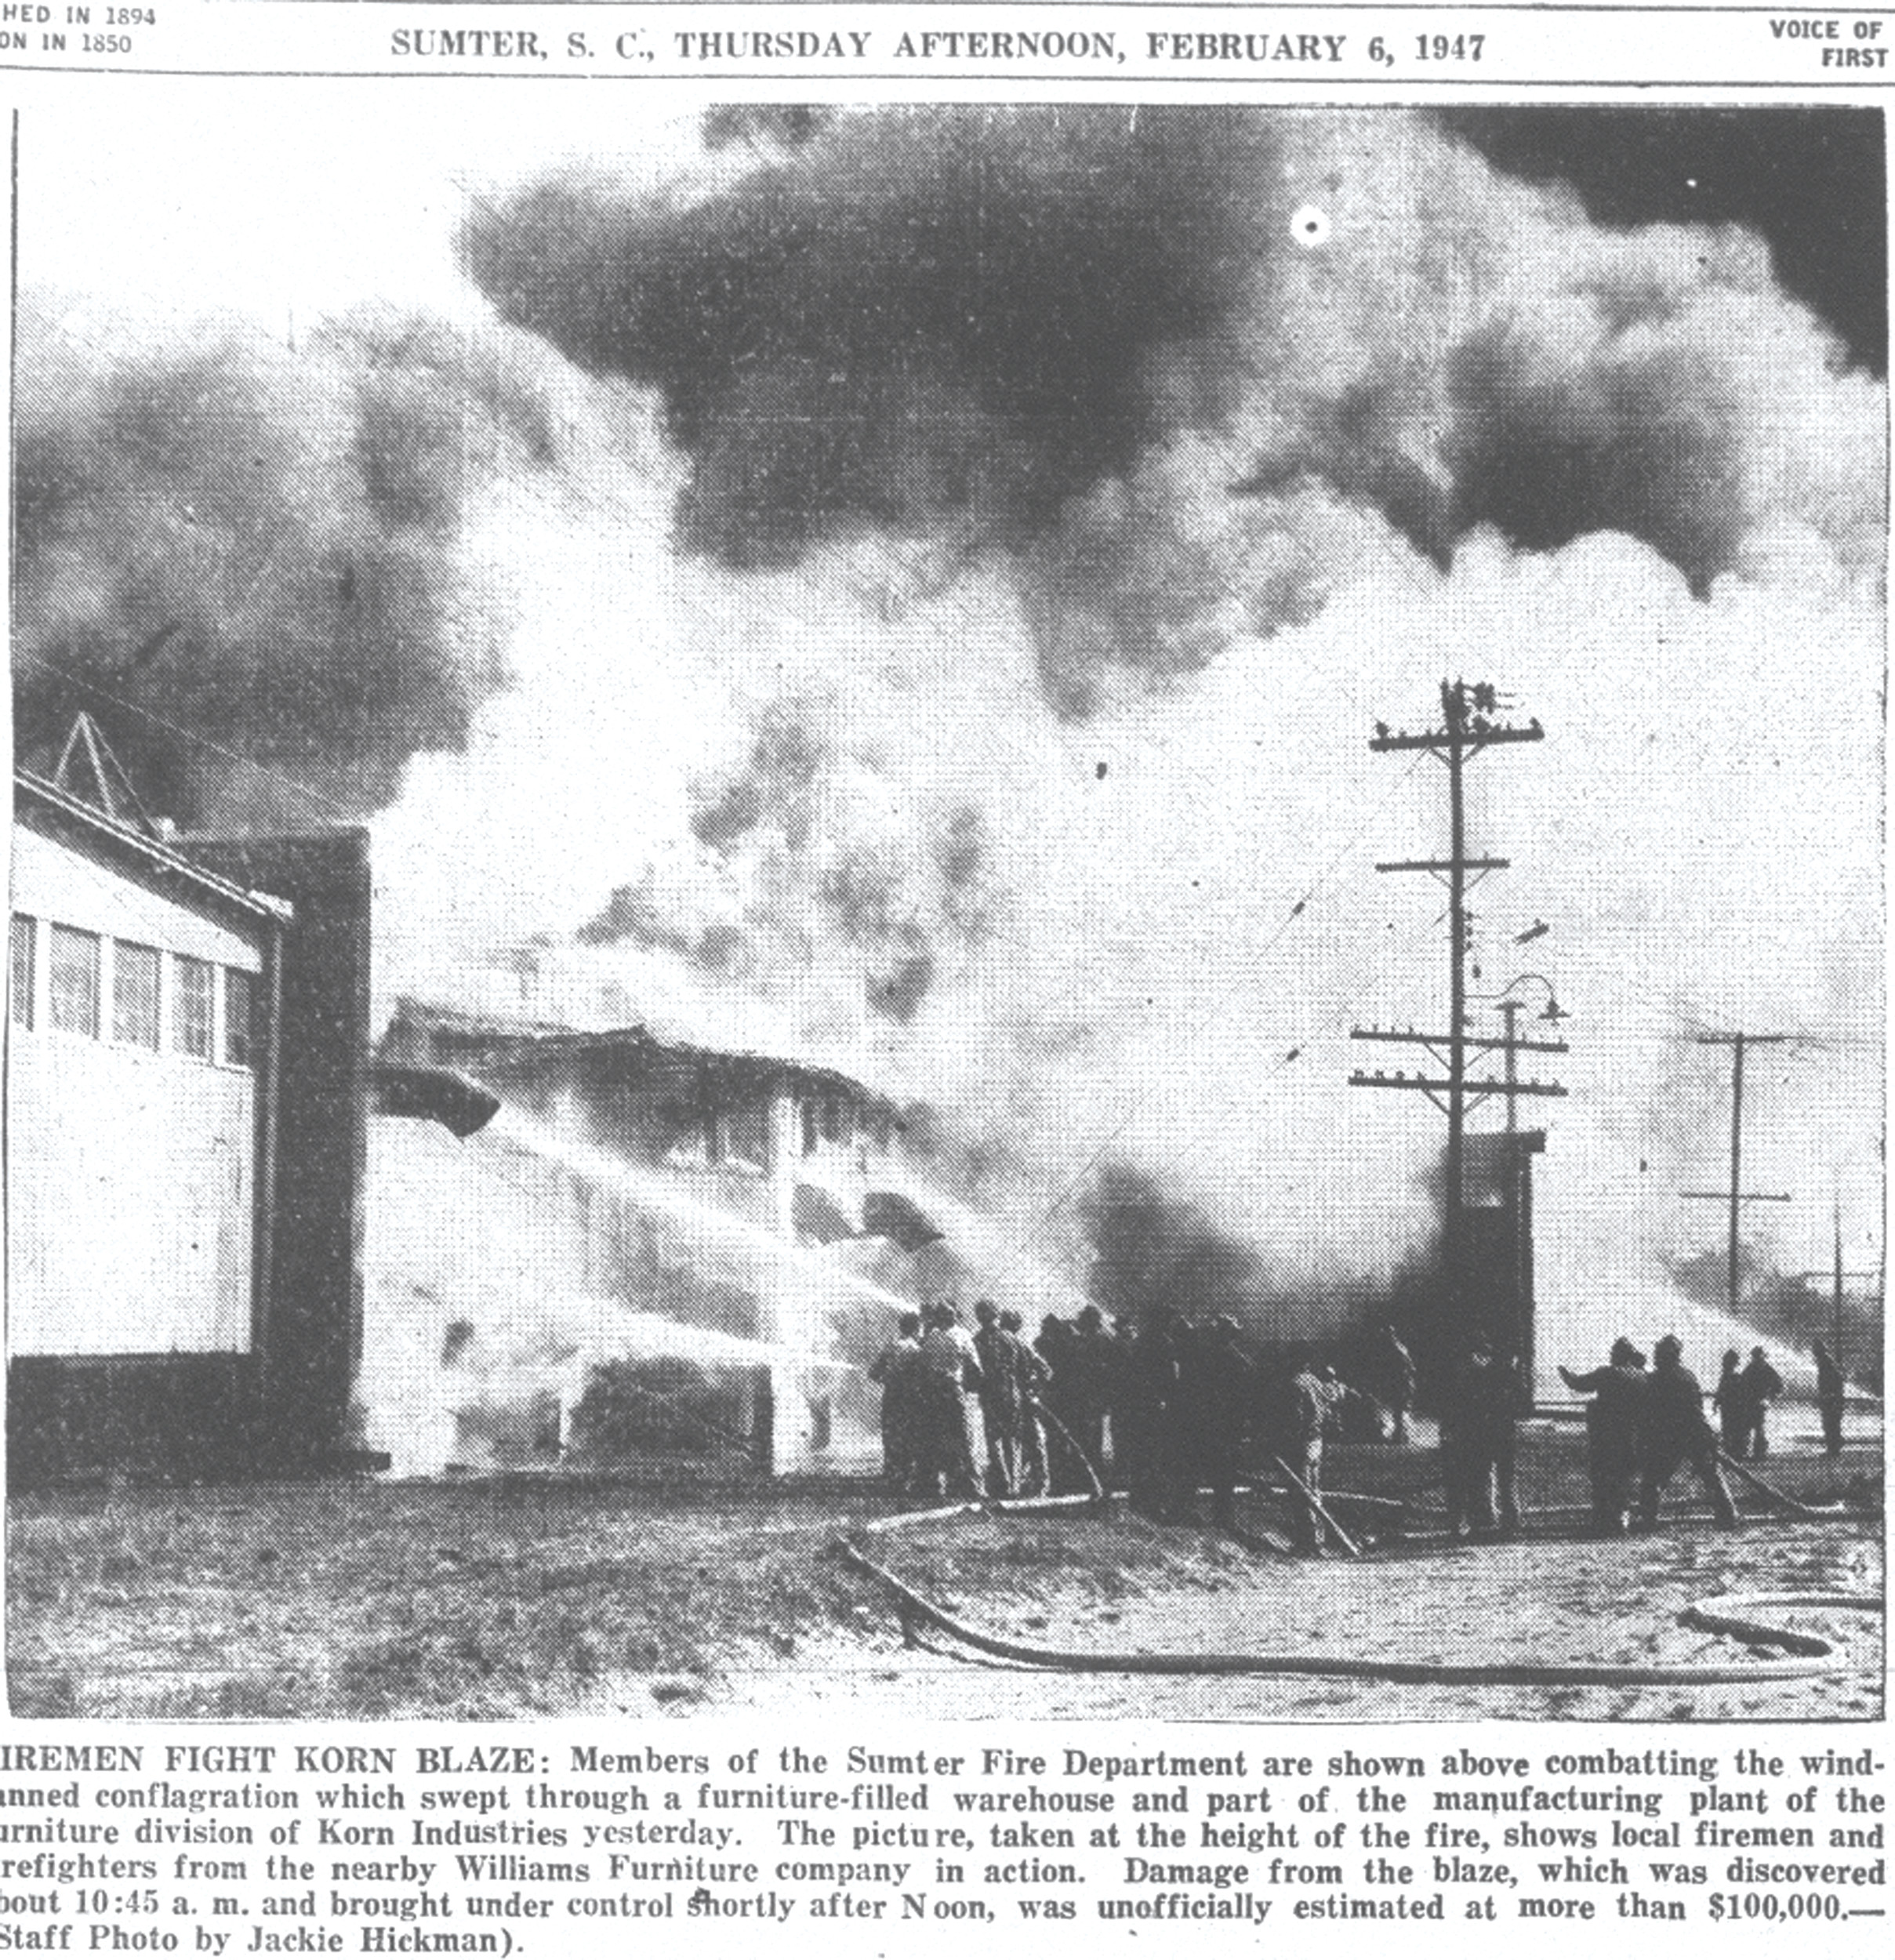 Sumter Fire Department firefighters and firefighters from nearby Williams Furniture company try to contain the blaze which swept through the furniture warehouse and part of the manufacturing plant of the furniture division of Korn Industries on Feb. 5, 1947. Damage was estimated at more than $100,000.